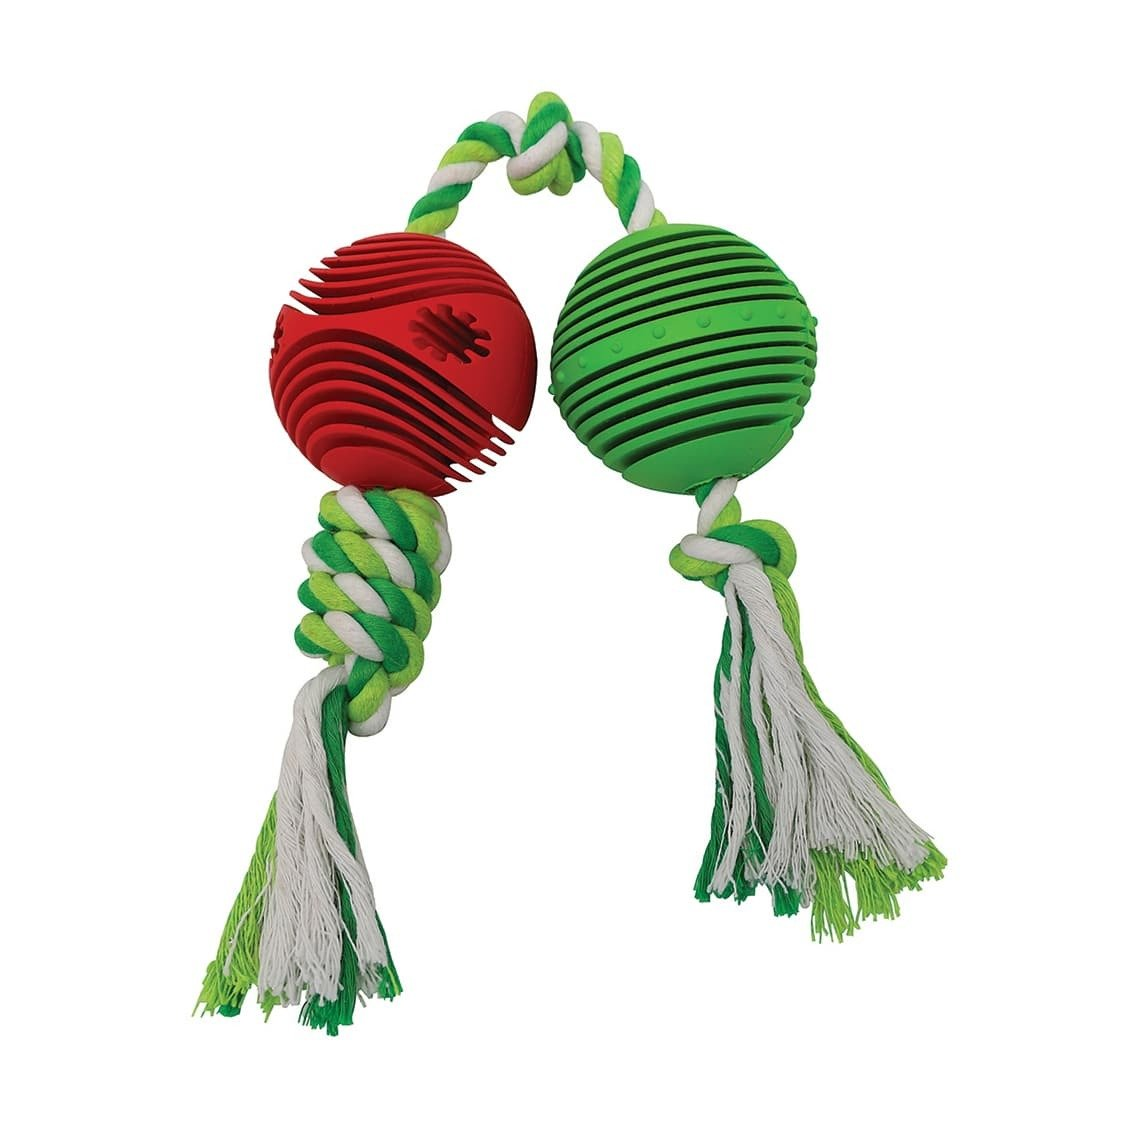 Rubber Balls w/ Rope 2.5″ – Green & Red